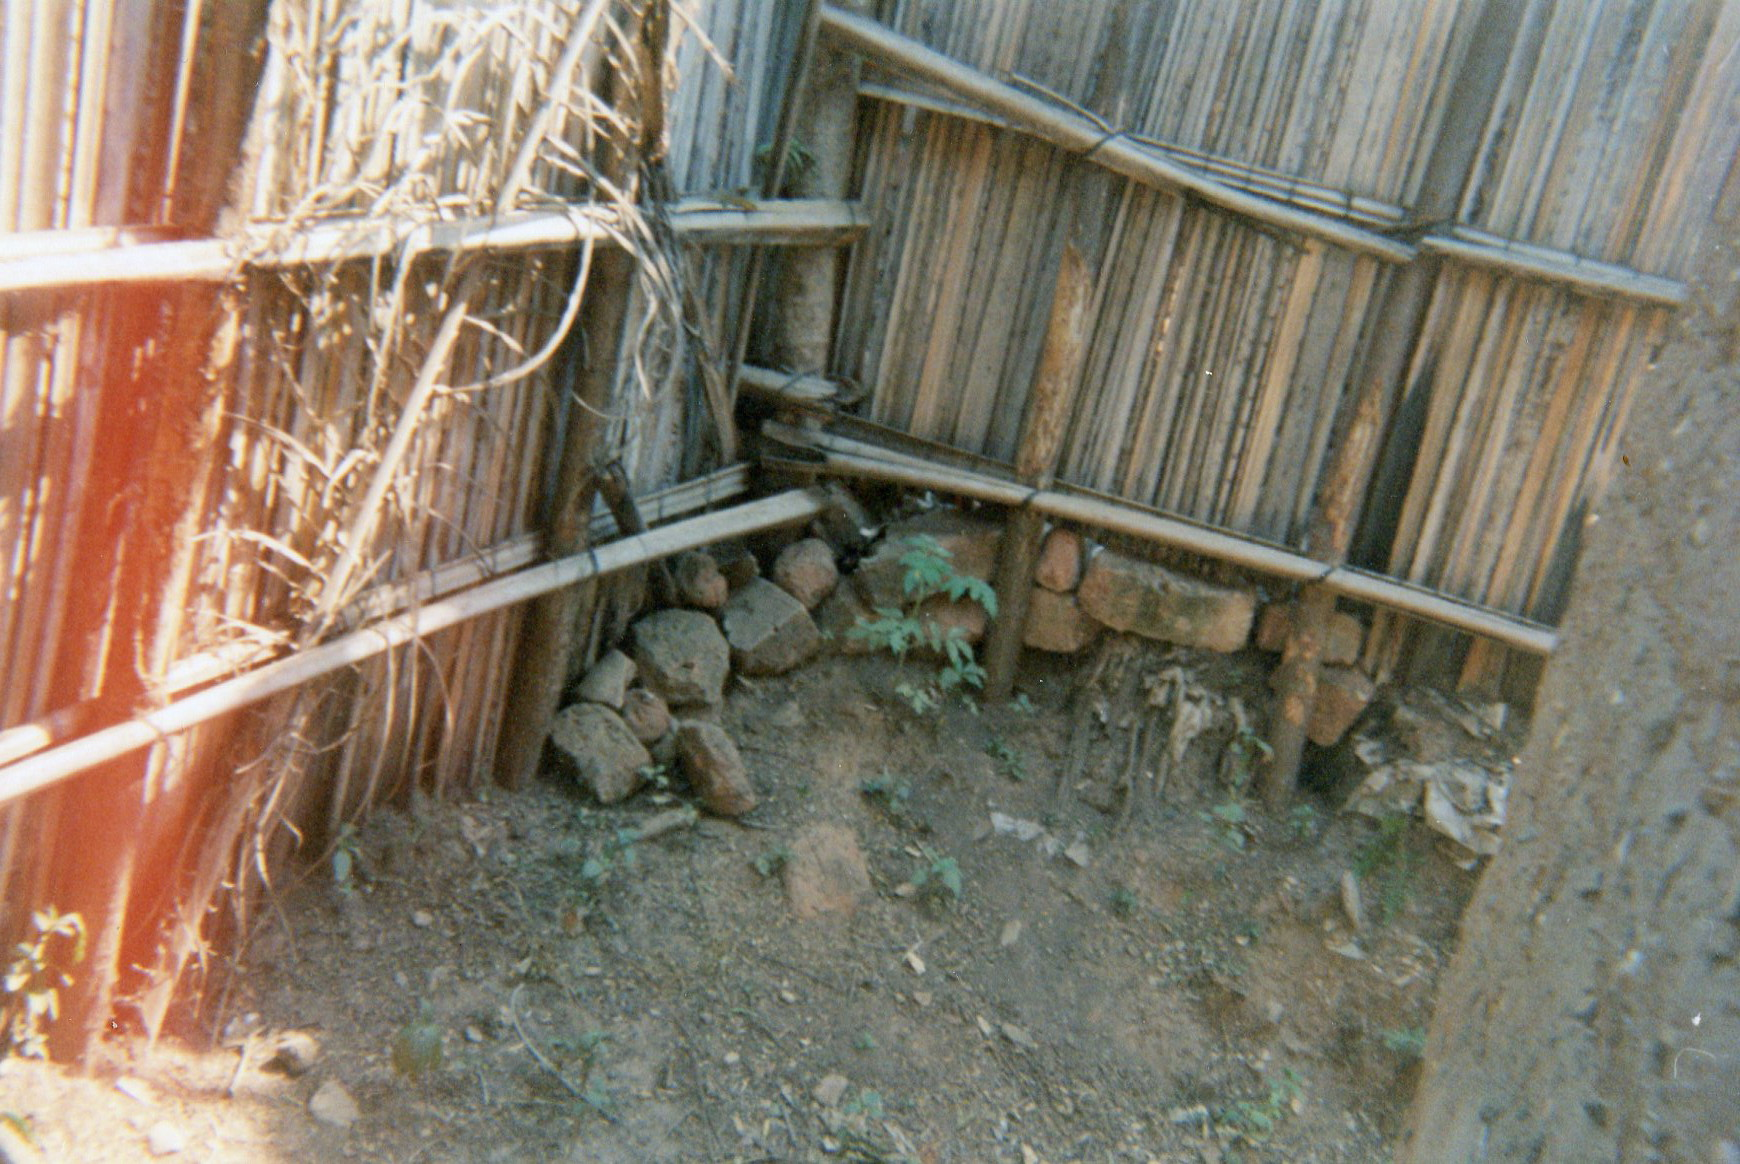 This picture shows the place where my child, Denis, was living when he was under the care of his commander.